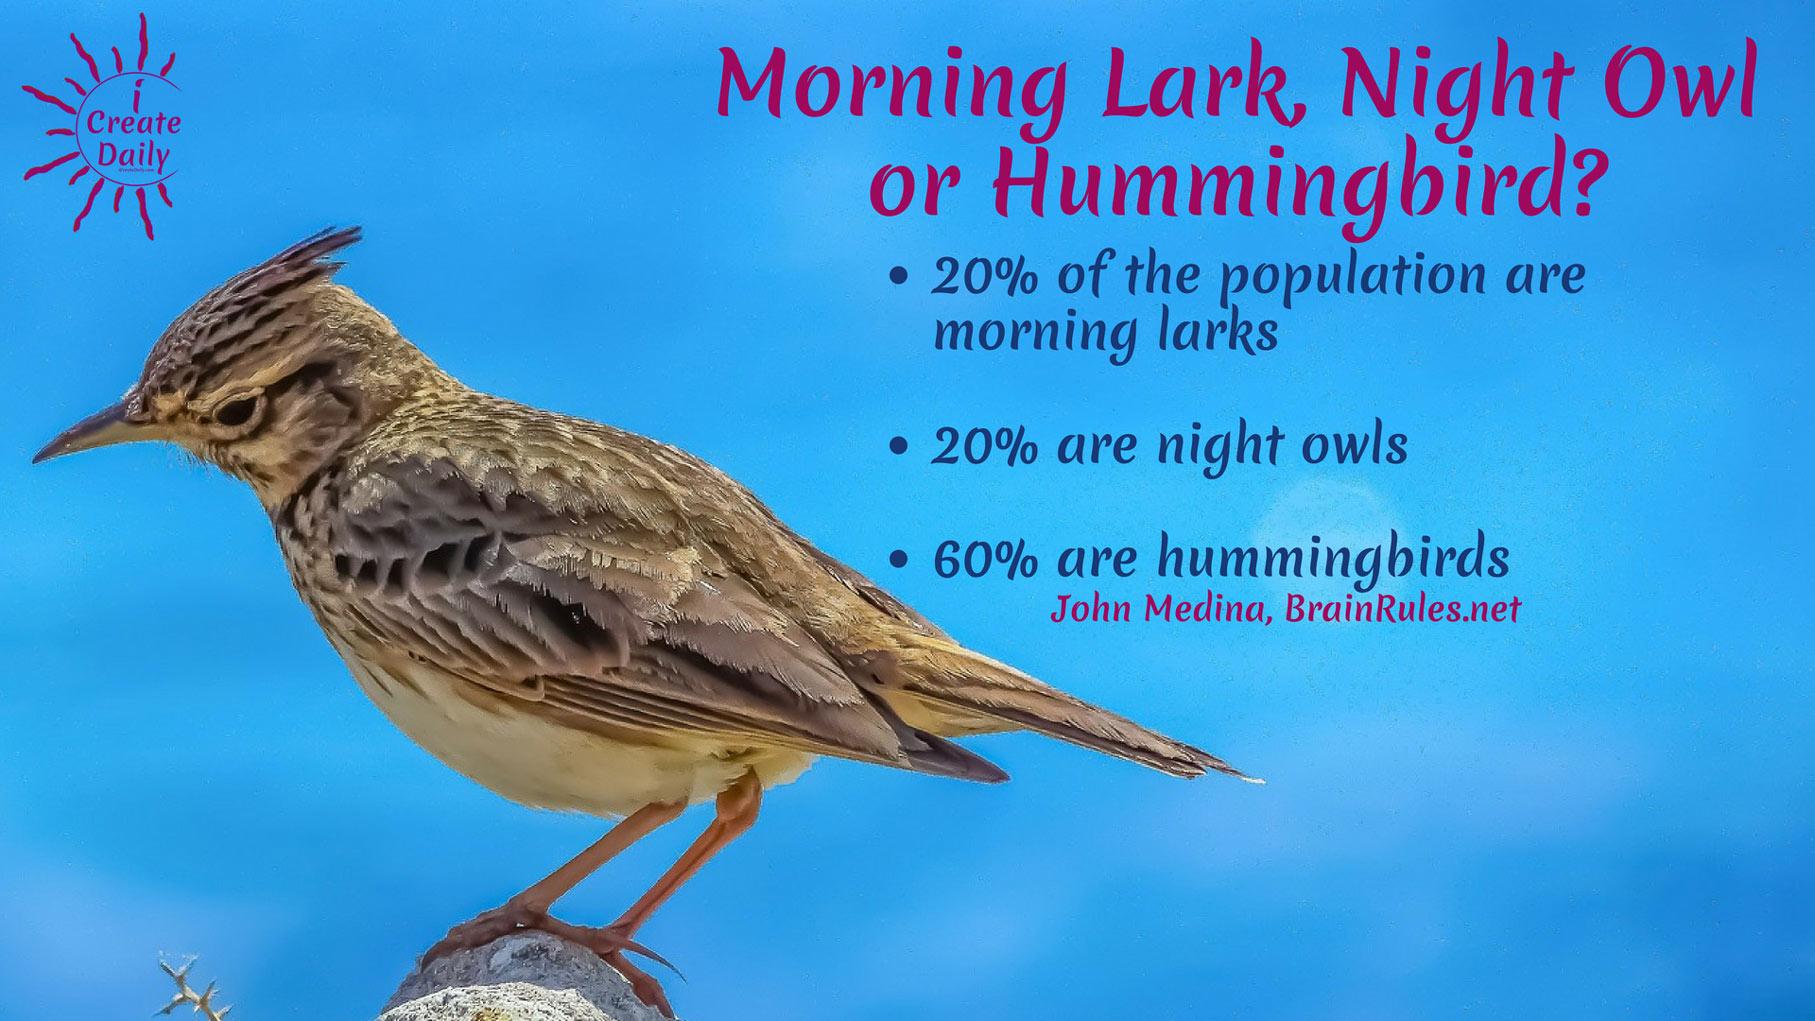 Morning Person or Night Owl? 60% of the population are hummingbirds. What?!? That's a new one! #MorningLark #NightOwl #Hummingbird #MostCreativeTime #GoalSetting #DailyGoals #MorningRoutine #WakeUpEarly